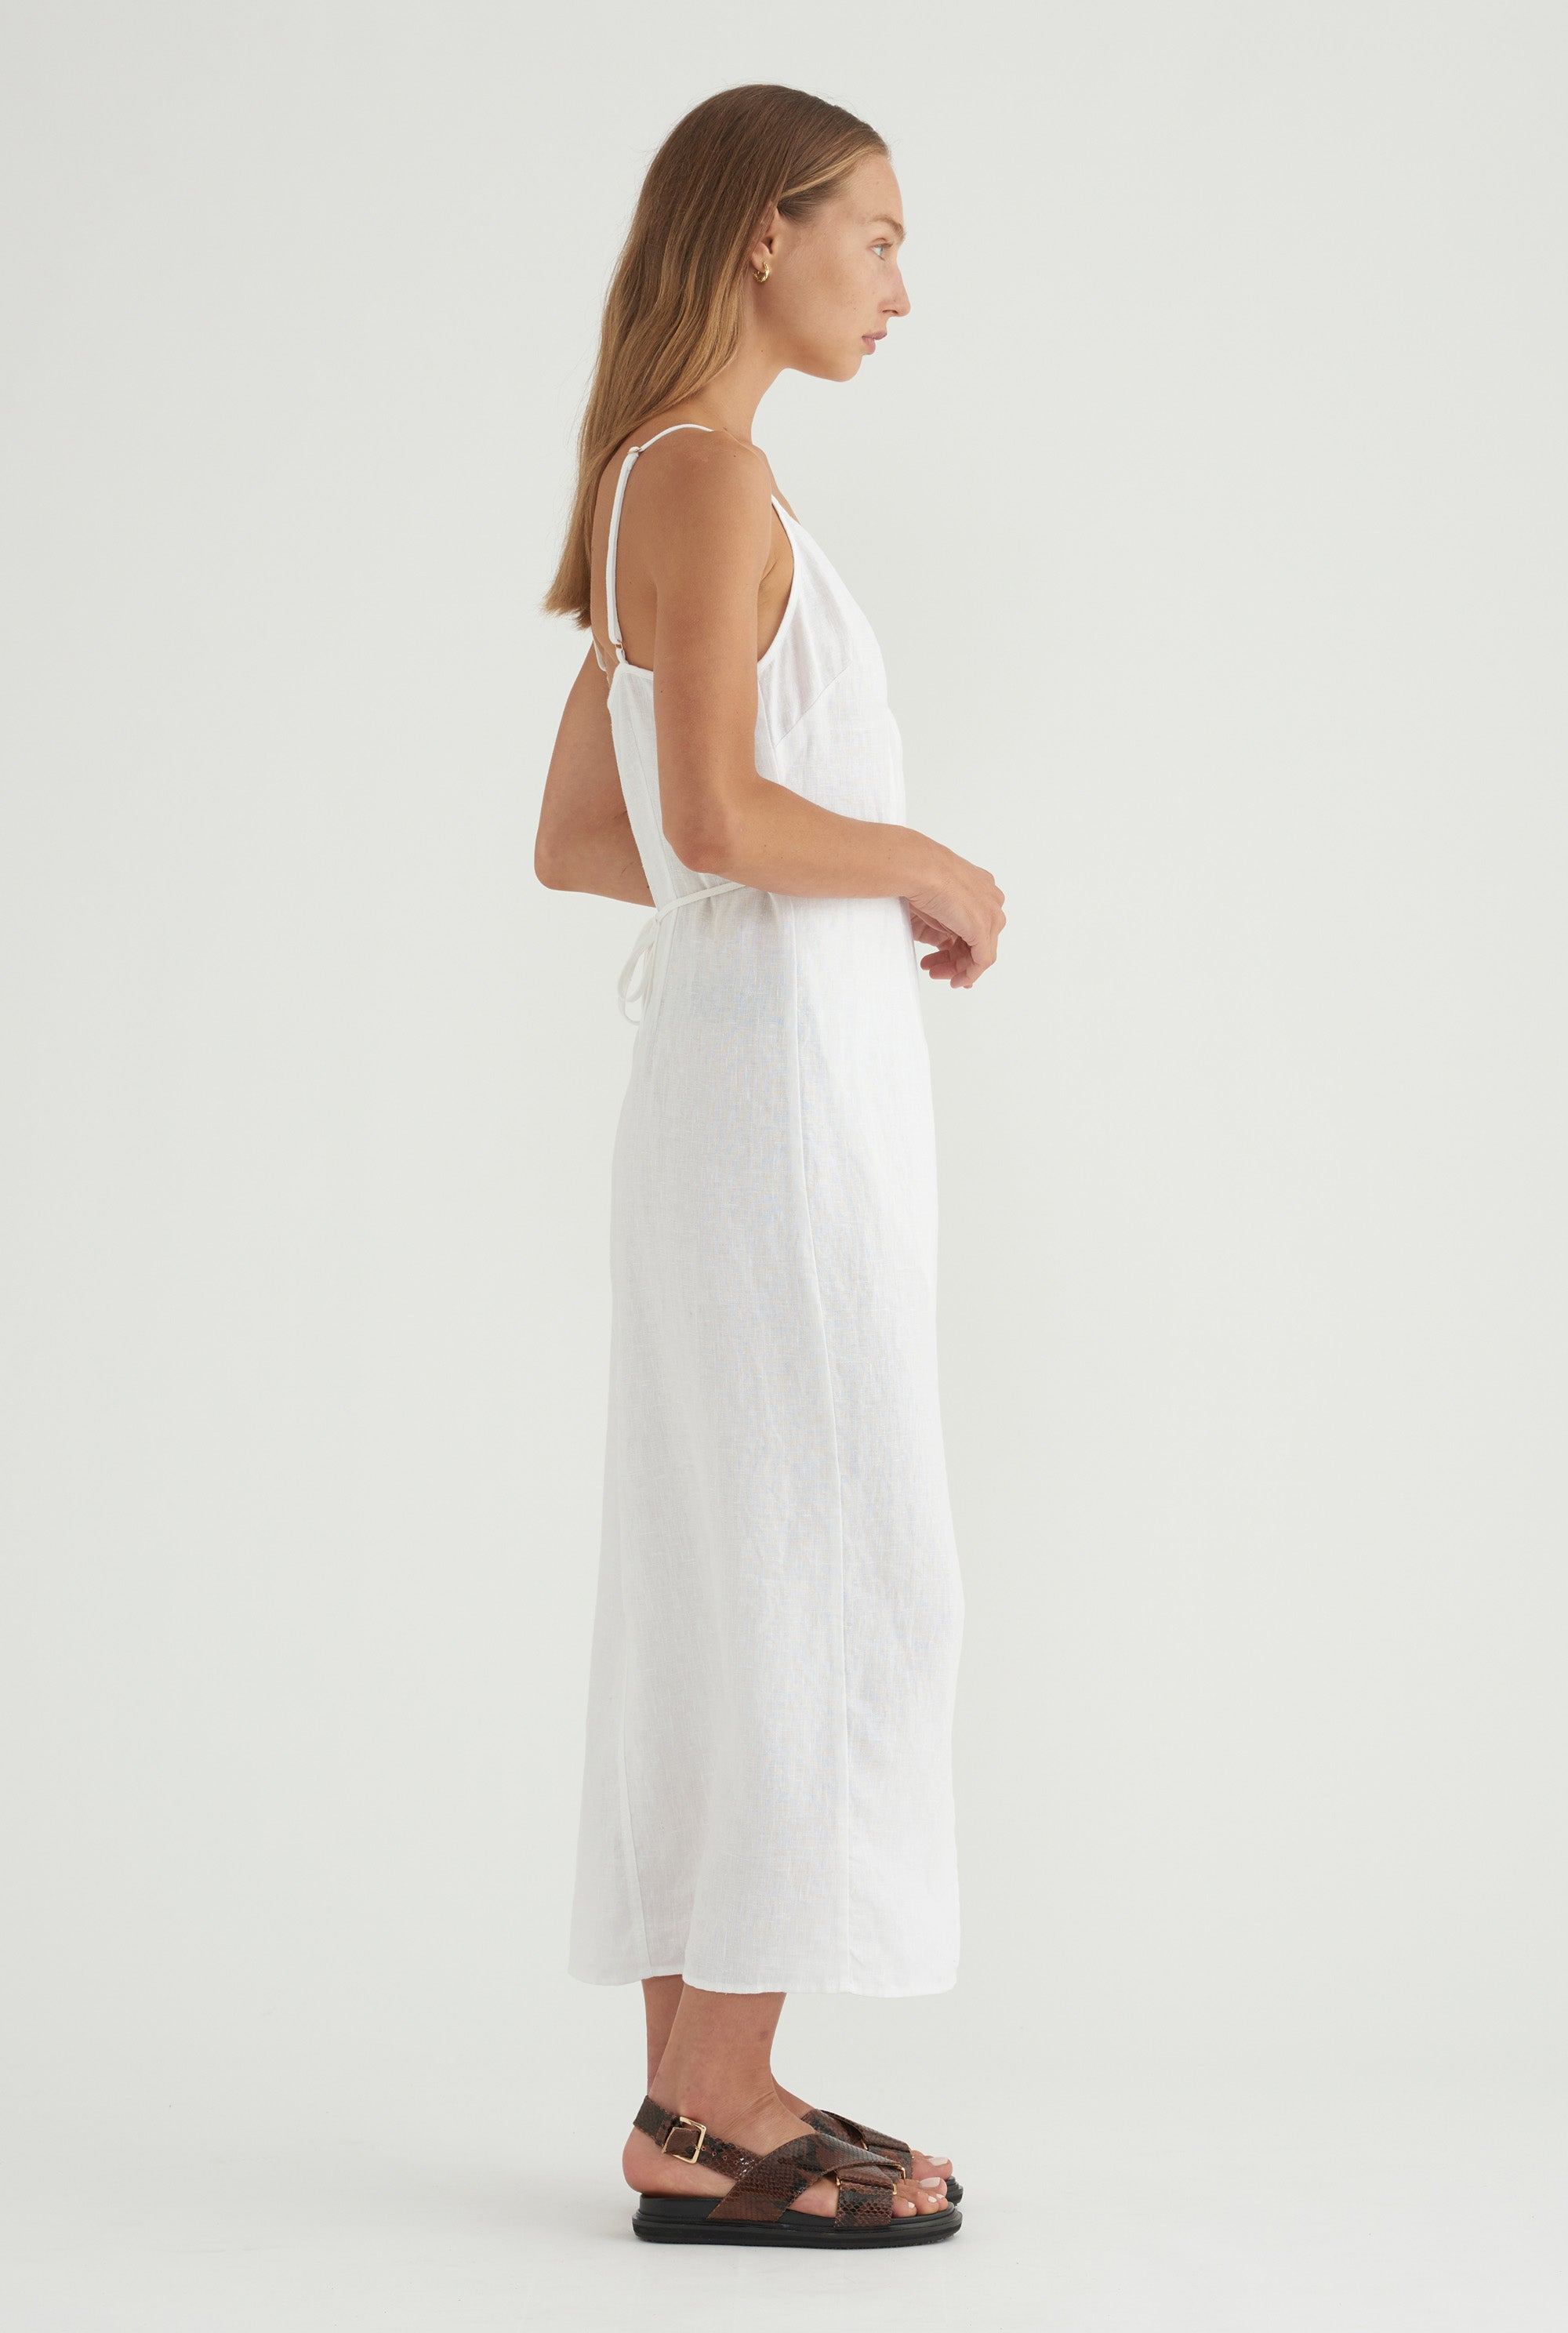 V-Neck Wrap Dress - White